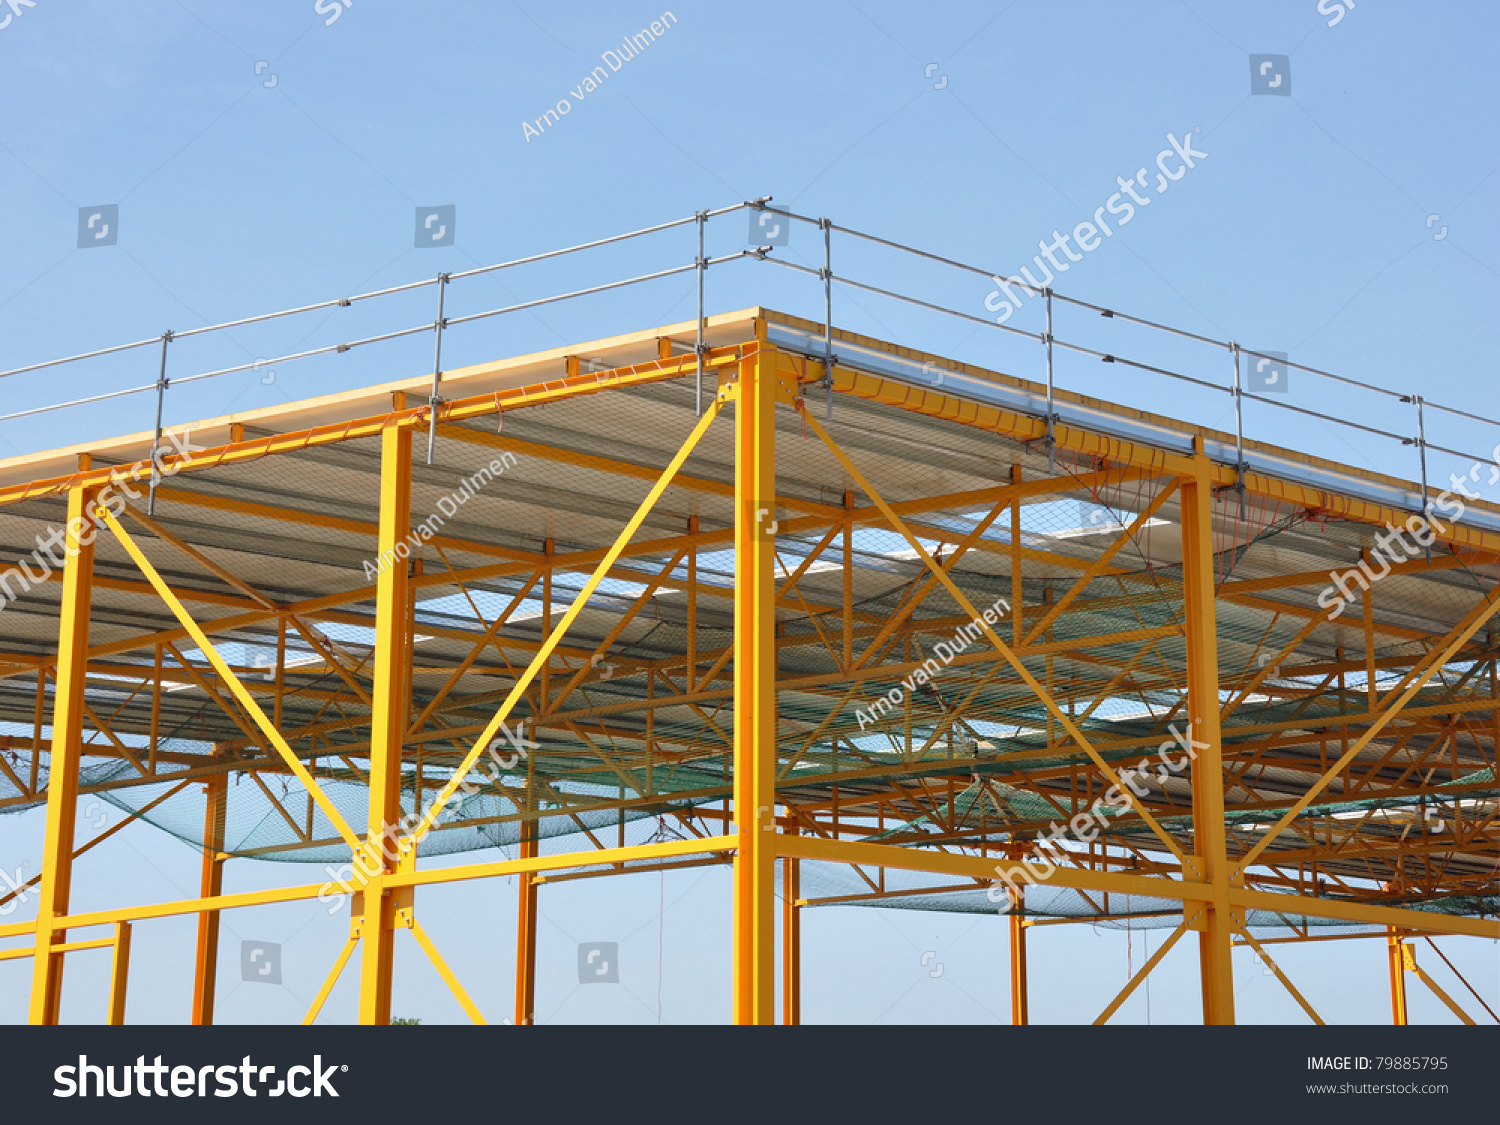 steel frame construction preview save to a lightbox